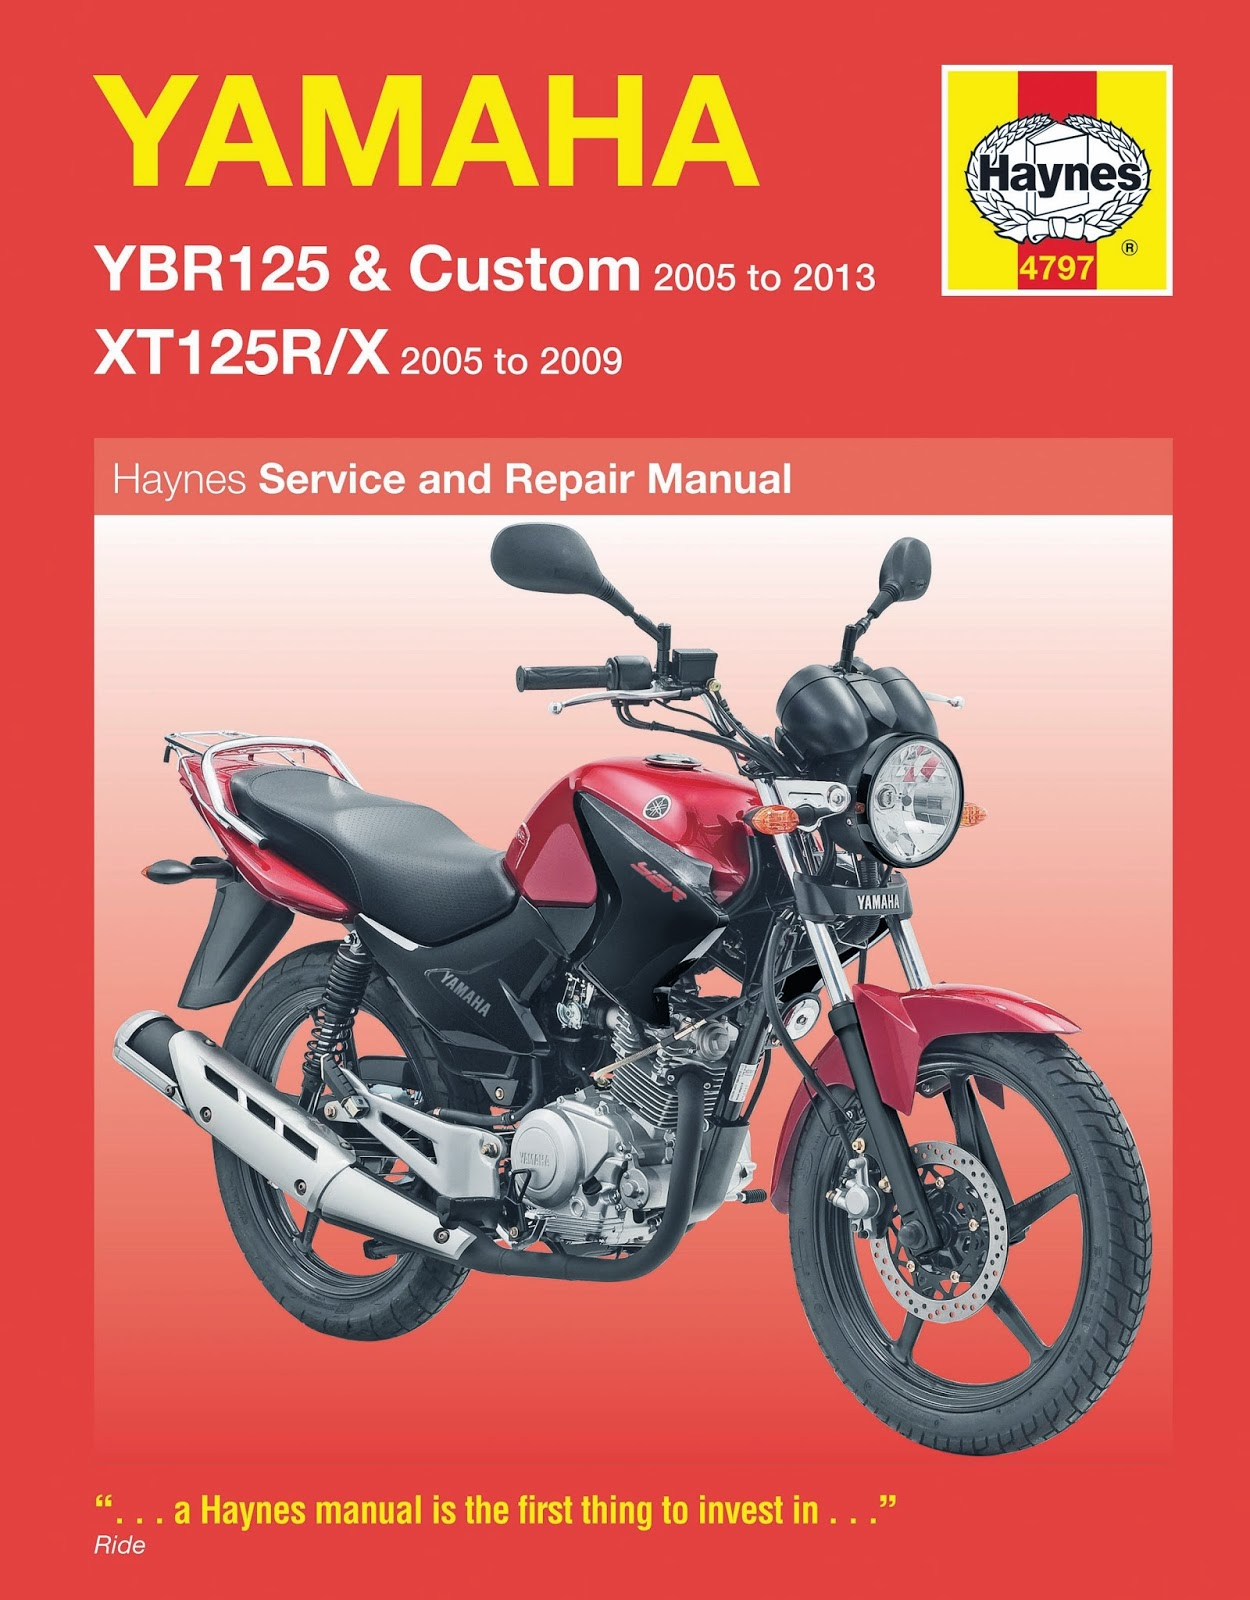 Yamaha 125 Wiring Diagram Schematics Diagrams Dt Mx Ybr Owner Blog Electrical System Rh Ybr125owner Blogspot Com